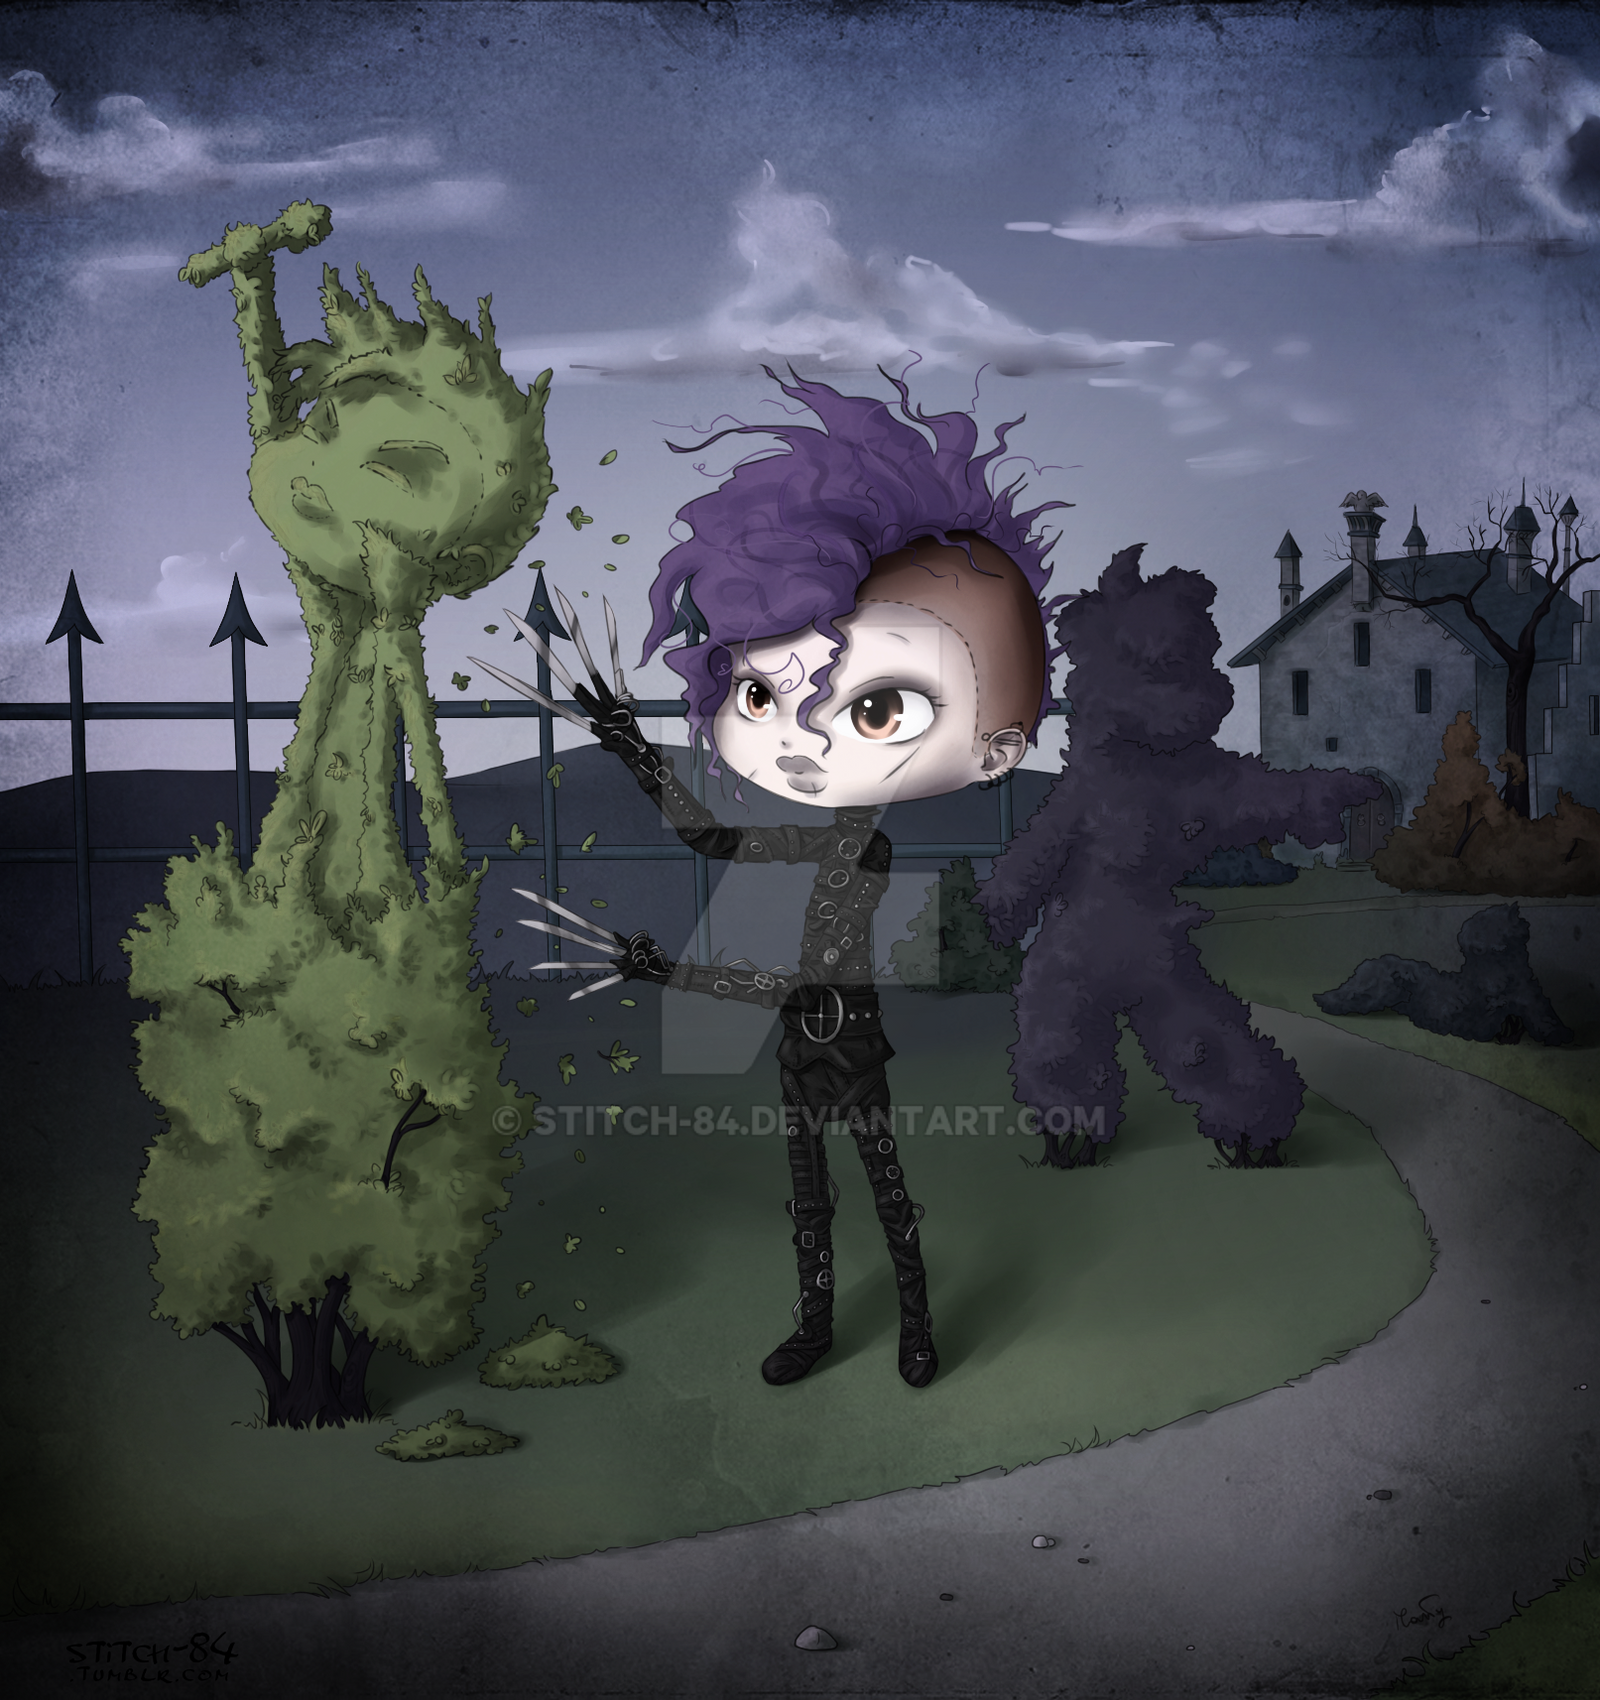 Tommy Joe scissorhands by stitch-84